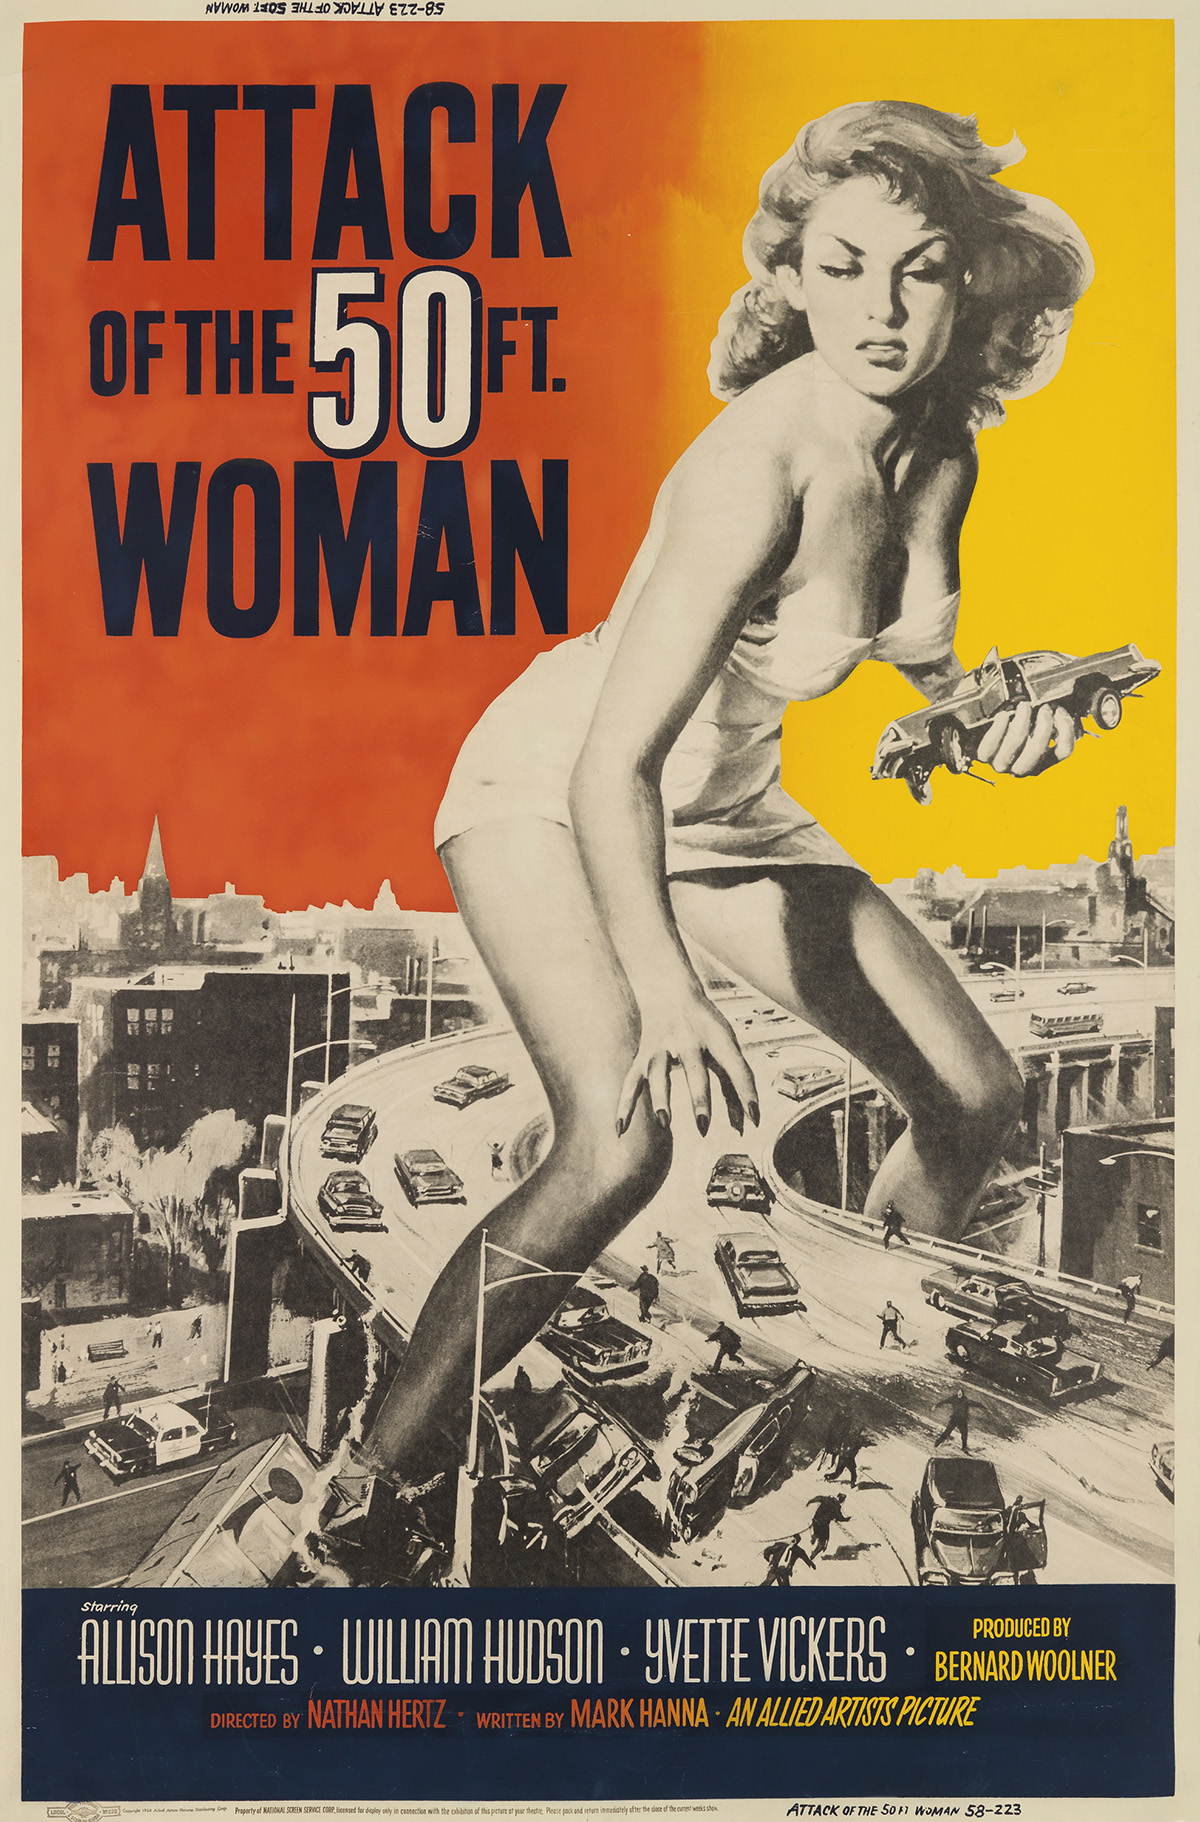 DESIGNER-UNKNOWN-ATTACK-OF-THE-50-FT-WOMAN-1958-60x40-inches